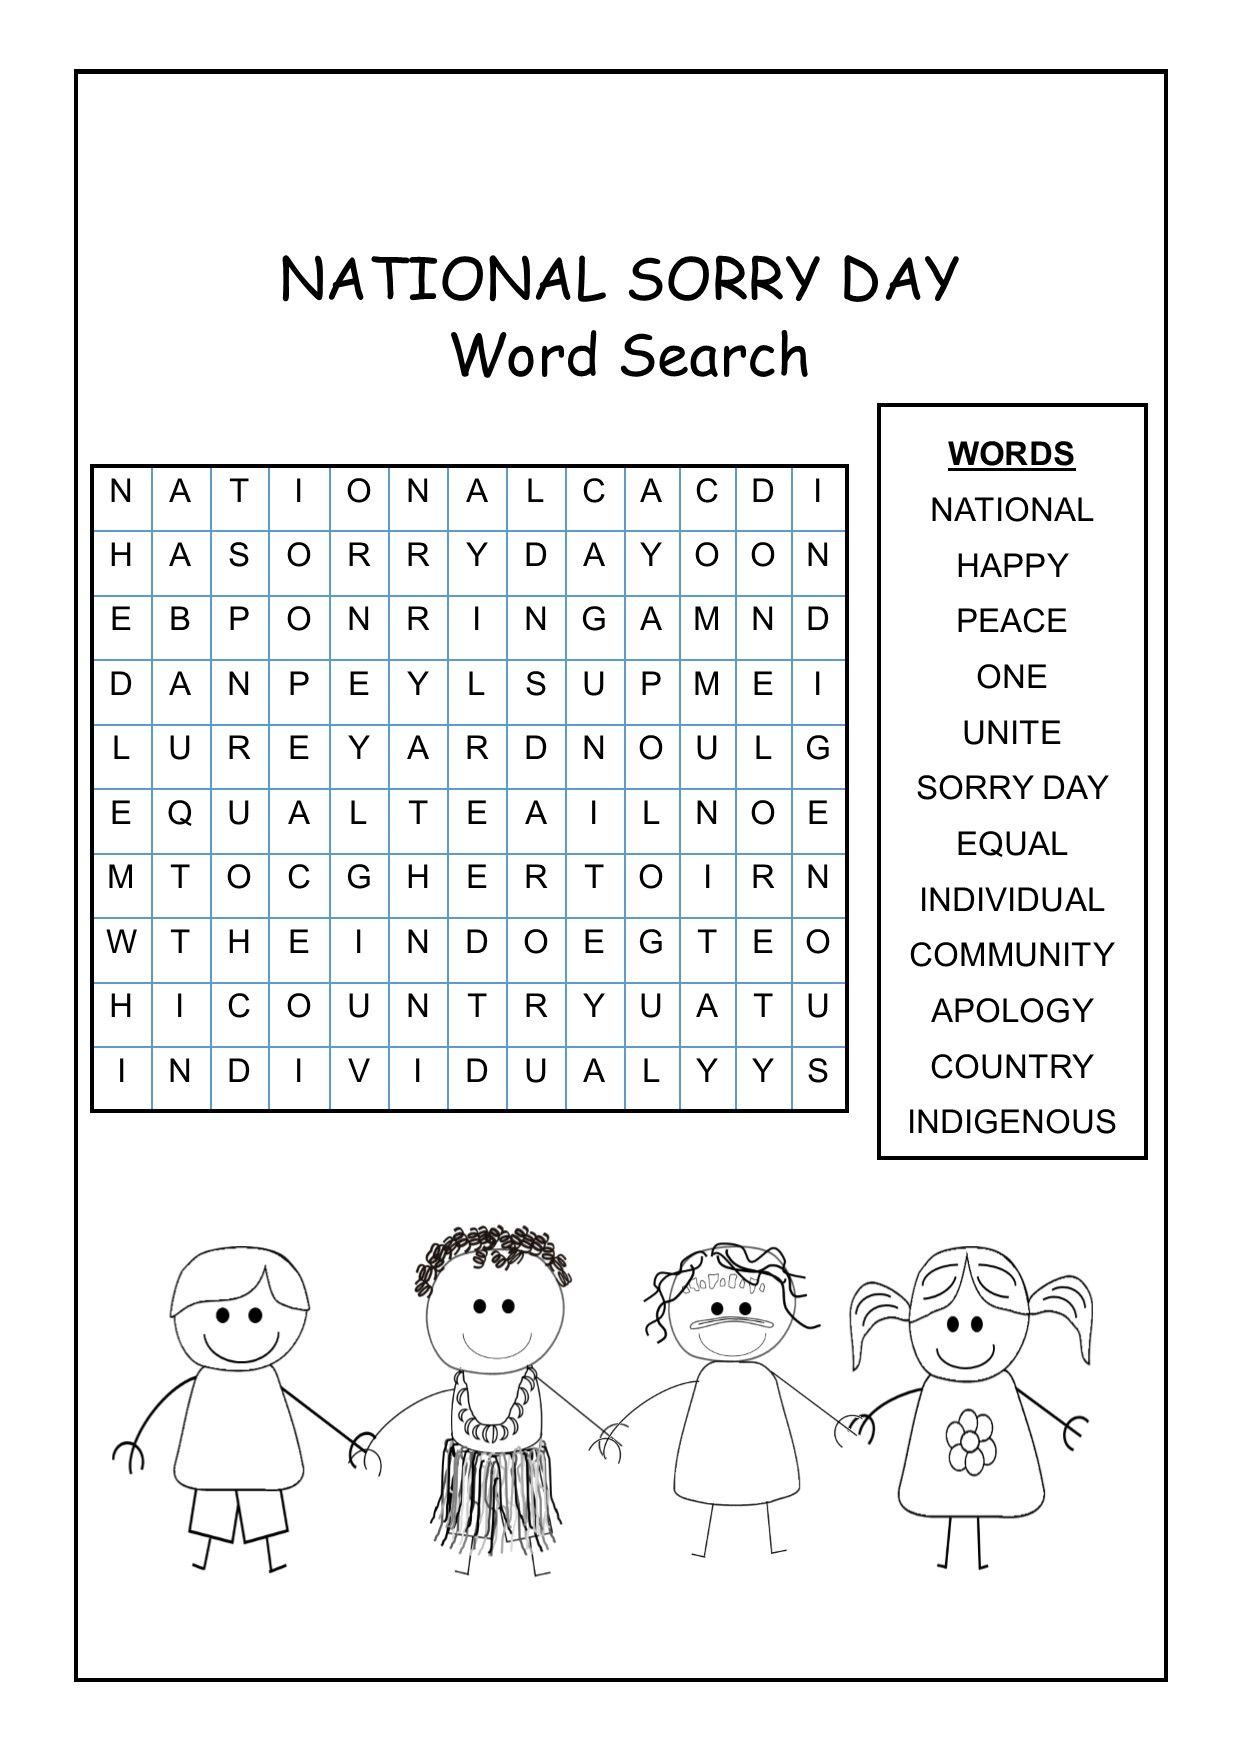 National Sorry Day Word Search